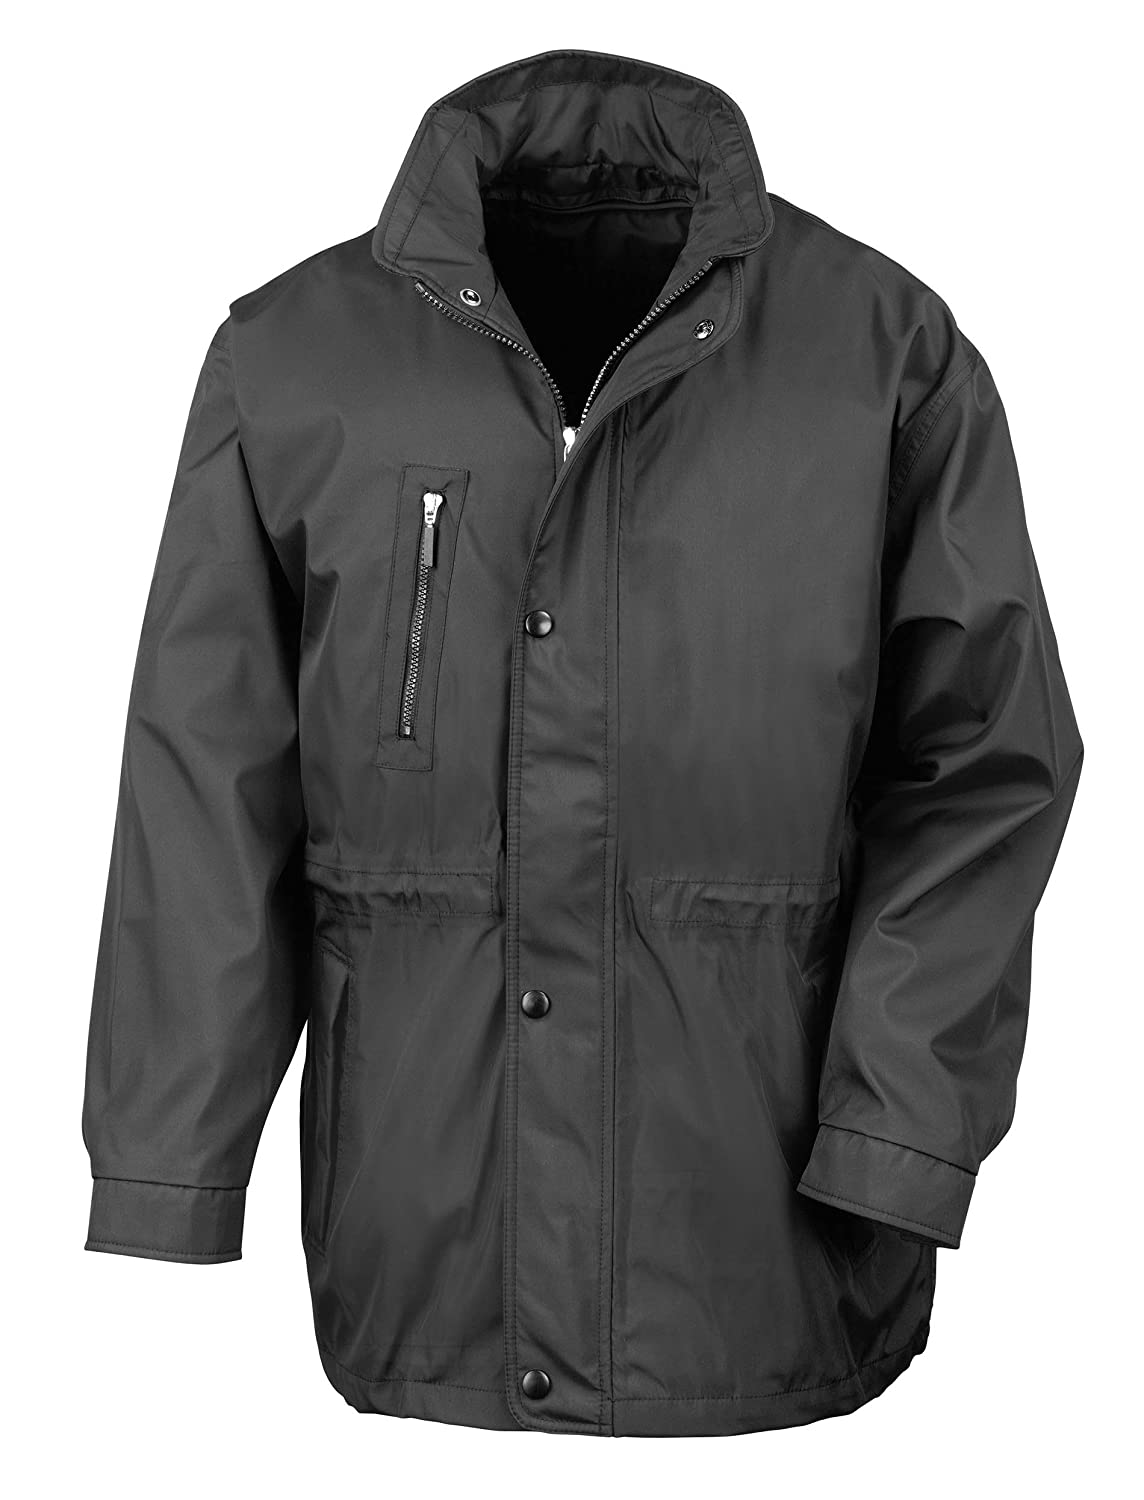 Ergebnis R110 a City Executive Coat